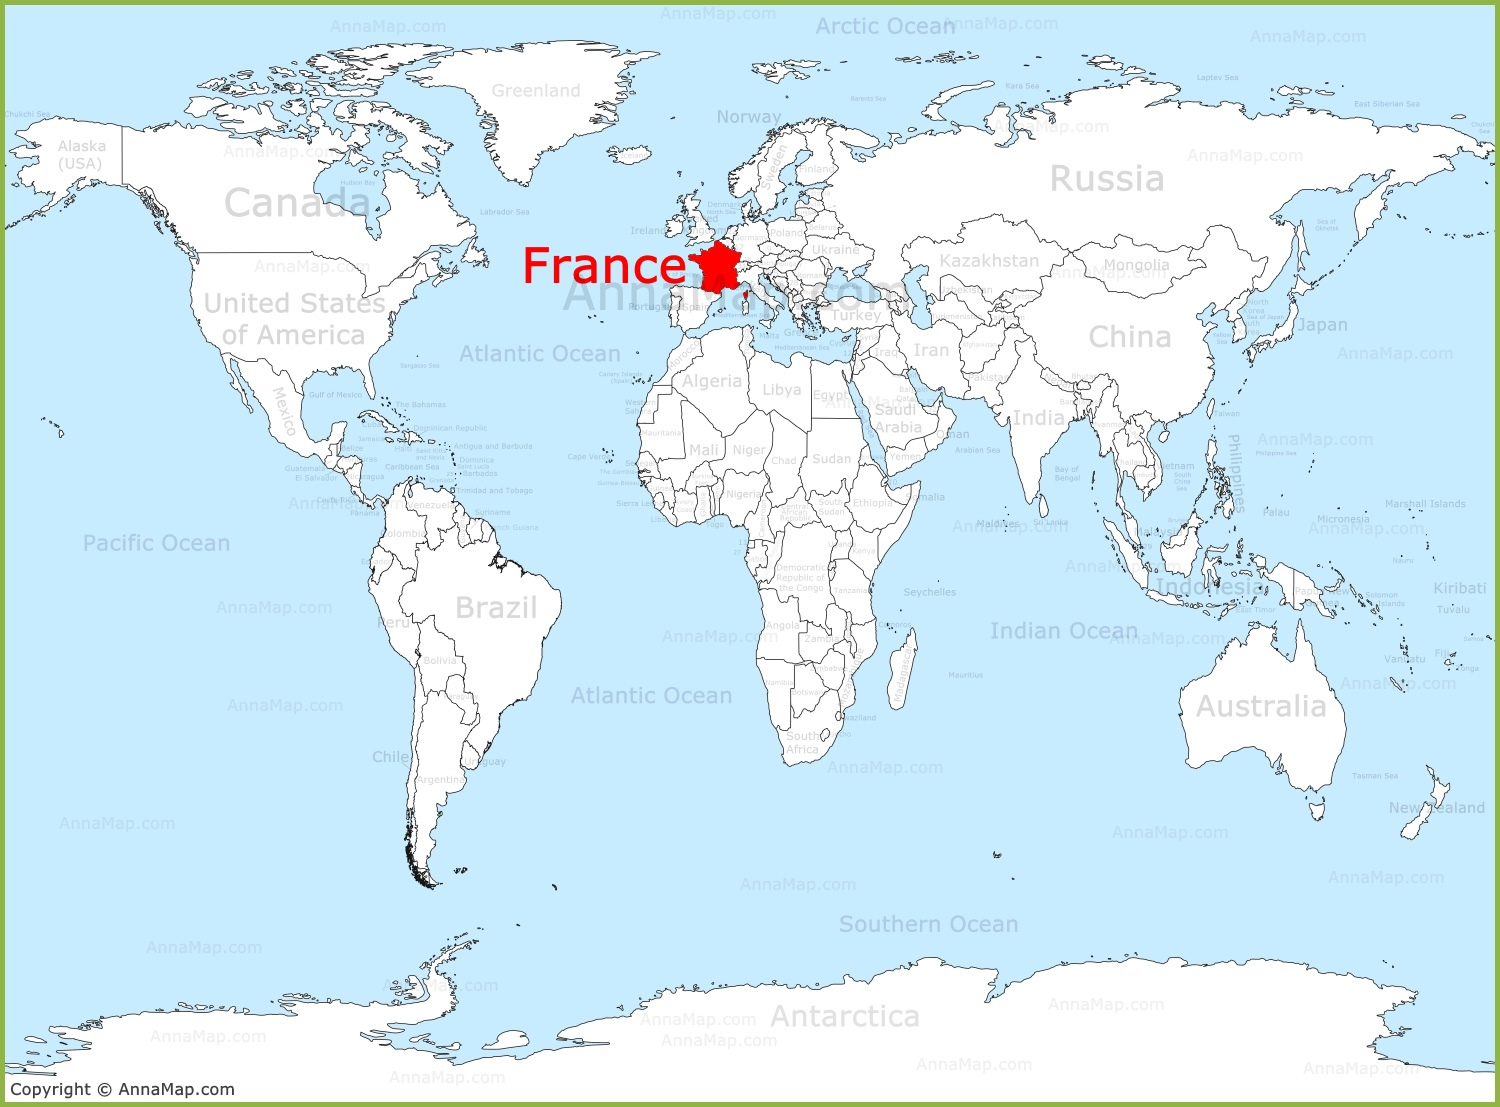 France On A World Map France on the World map   AnnaMap.com